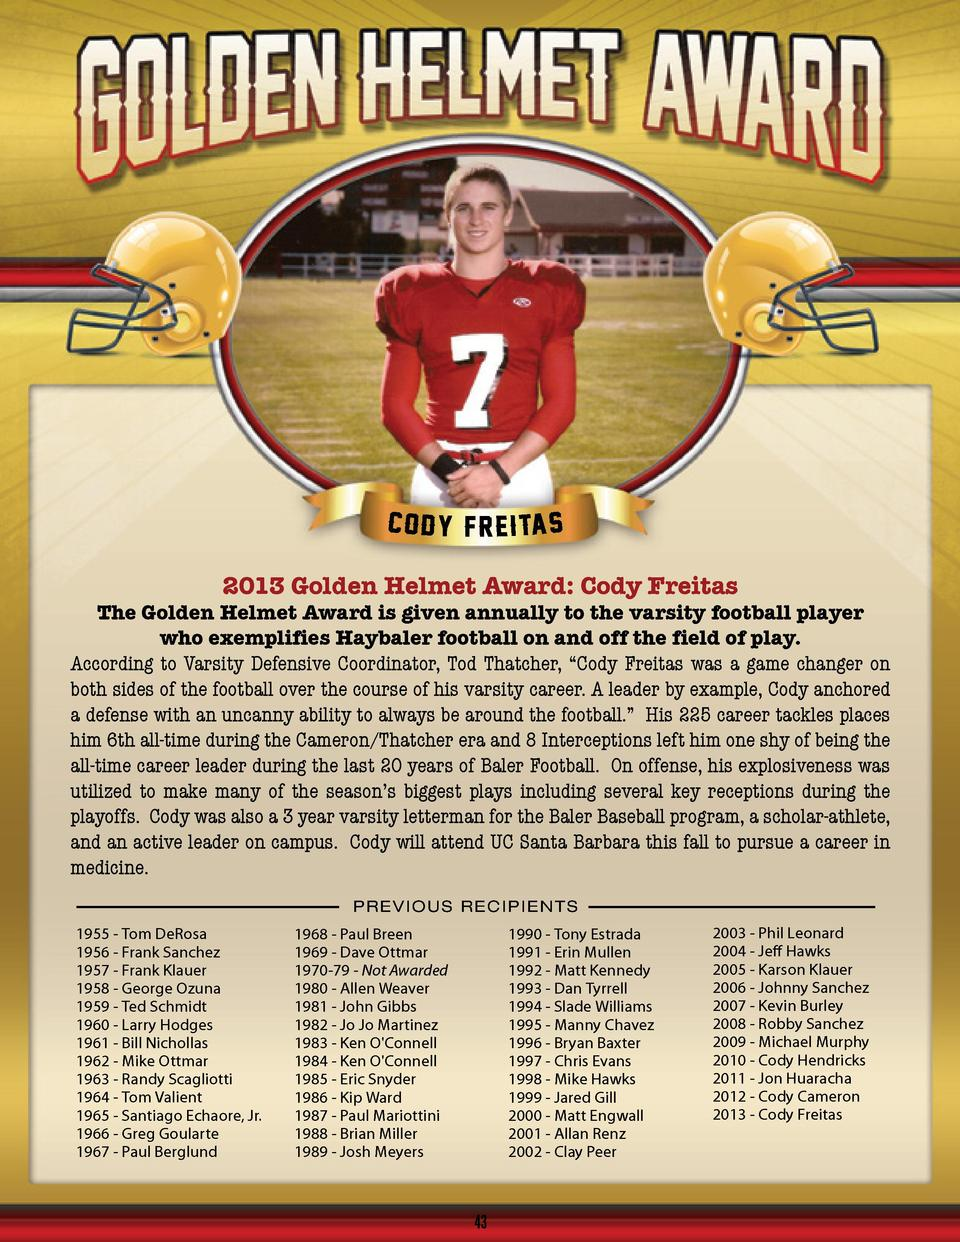 2013 Golden Helmet Award  Cody Freitas  The Golden Helmet Award is given annually to the varsity football player who exemp...